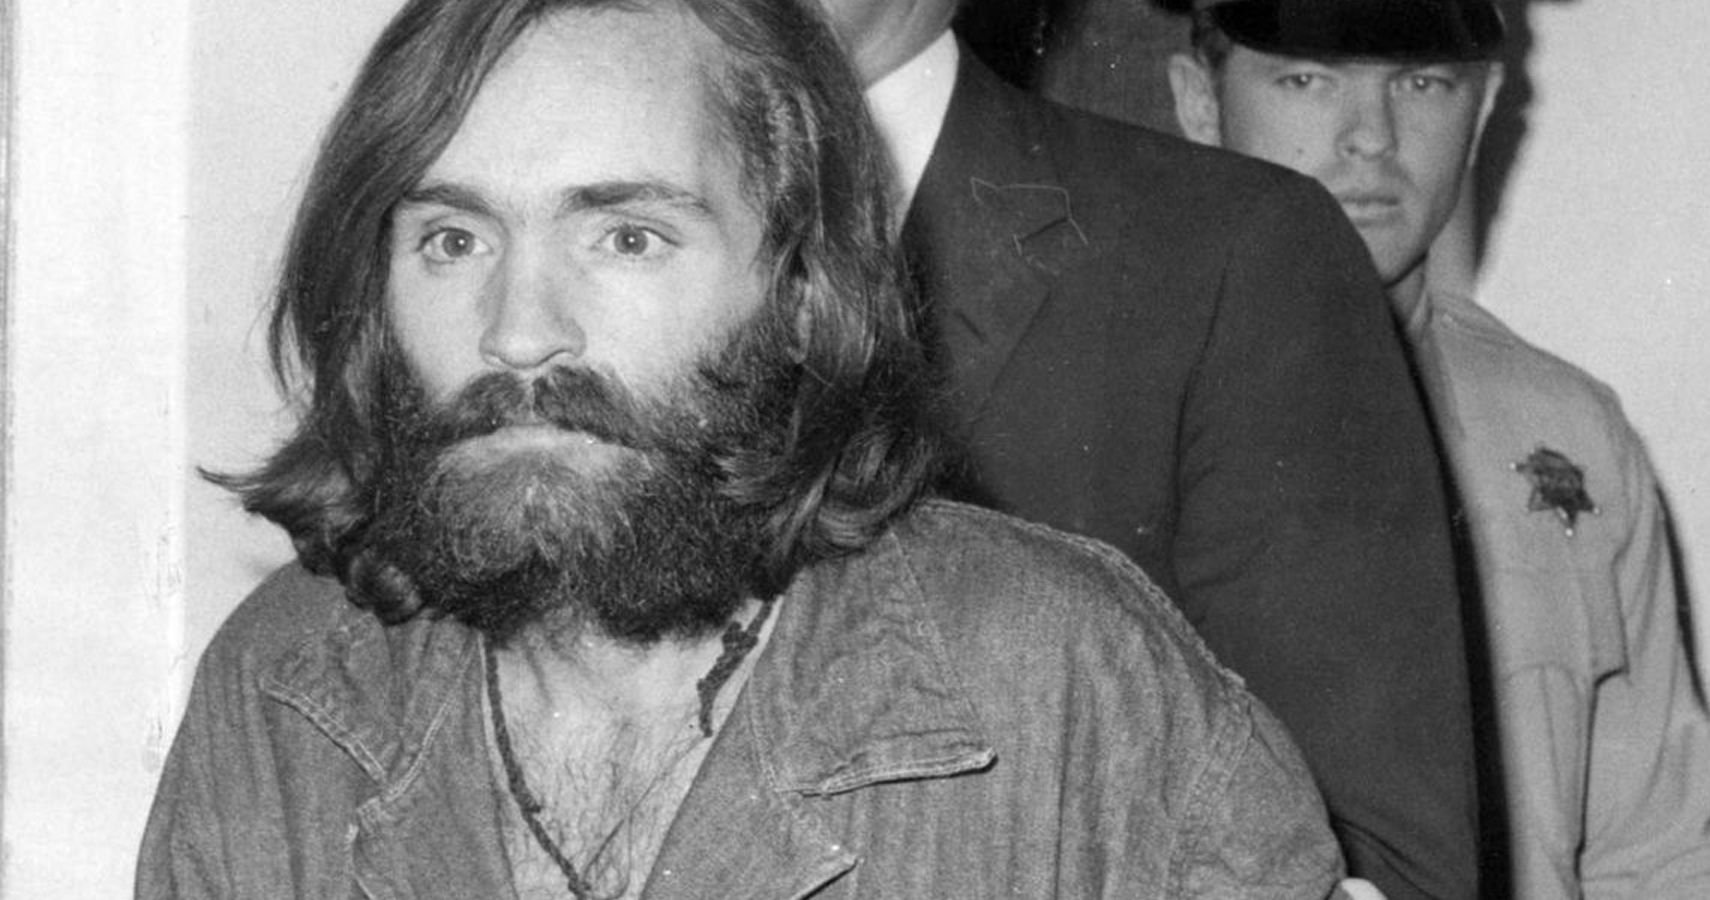 charles manson manson murders and the Charles milles manson was the leader of the manson family cult, which was responsible for a series of gruesome murders in the 1960s manson was born in cincinnati, ohio, in 1934 his mother was kentucky-born runaway kathleen maddox.